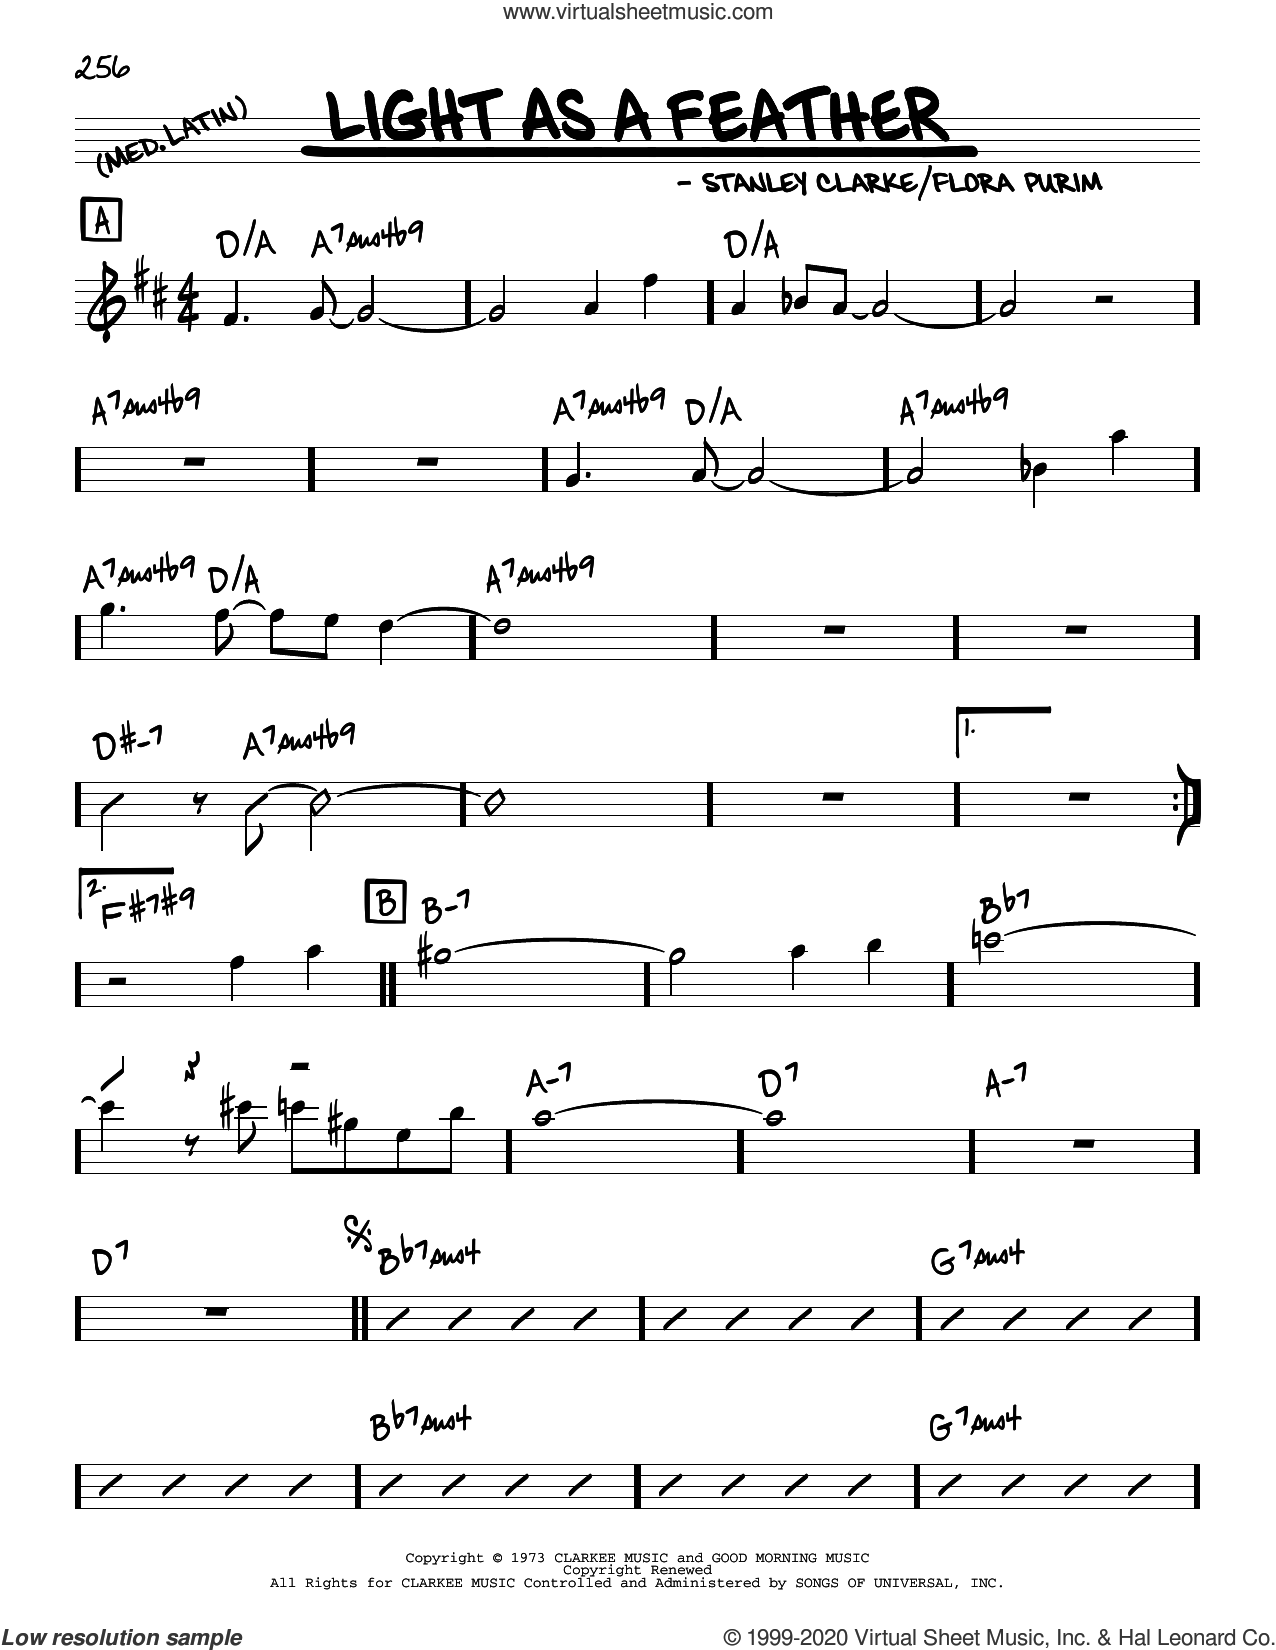 Light As A Feather sheet music for voice and other instruments (real book) by Stanley Clarke and Flora Purim, intermediate skill level